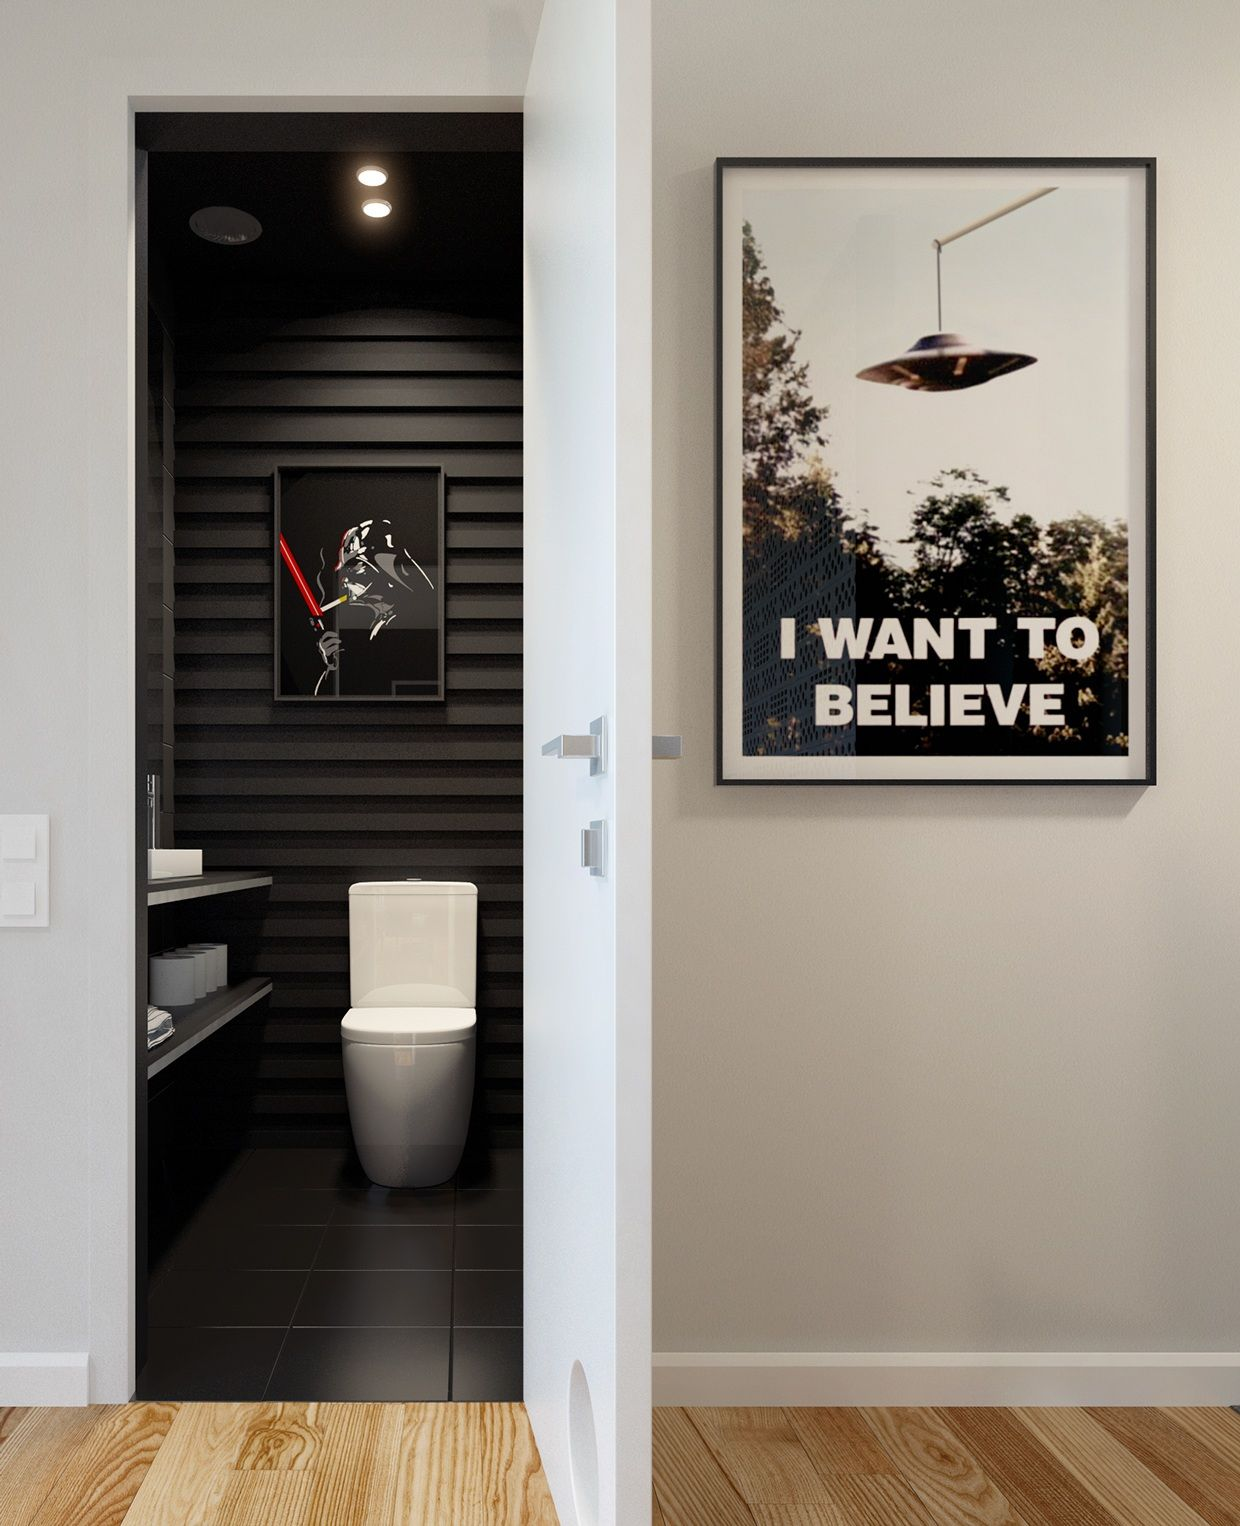 Cleverstarwarsprint Toilette WC Stylés Pinterest Square - Star wars bathroom decor for small bathroom ideas